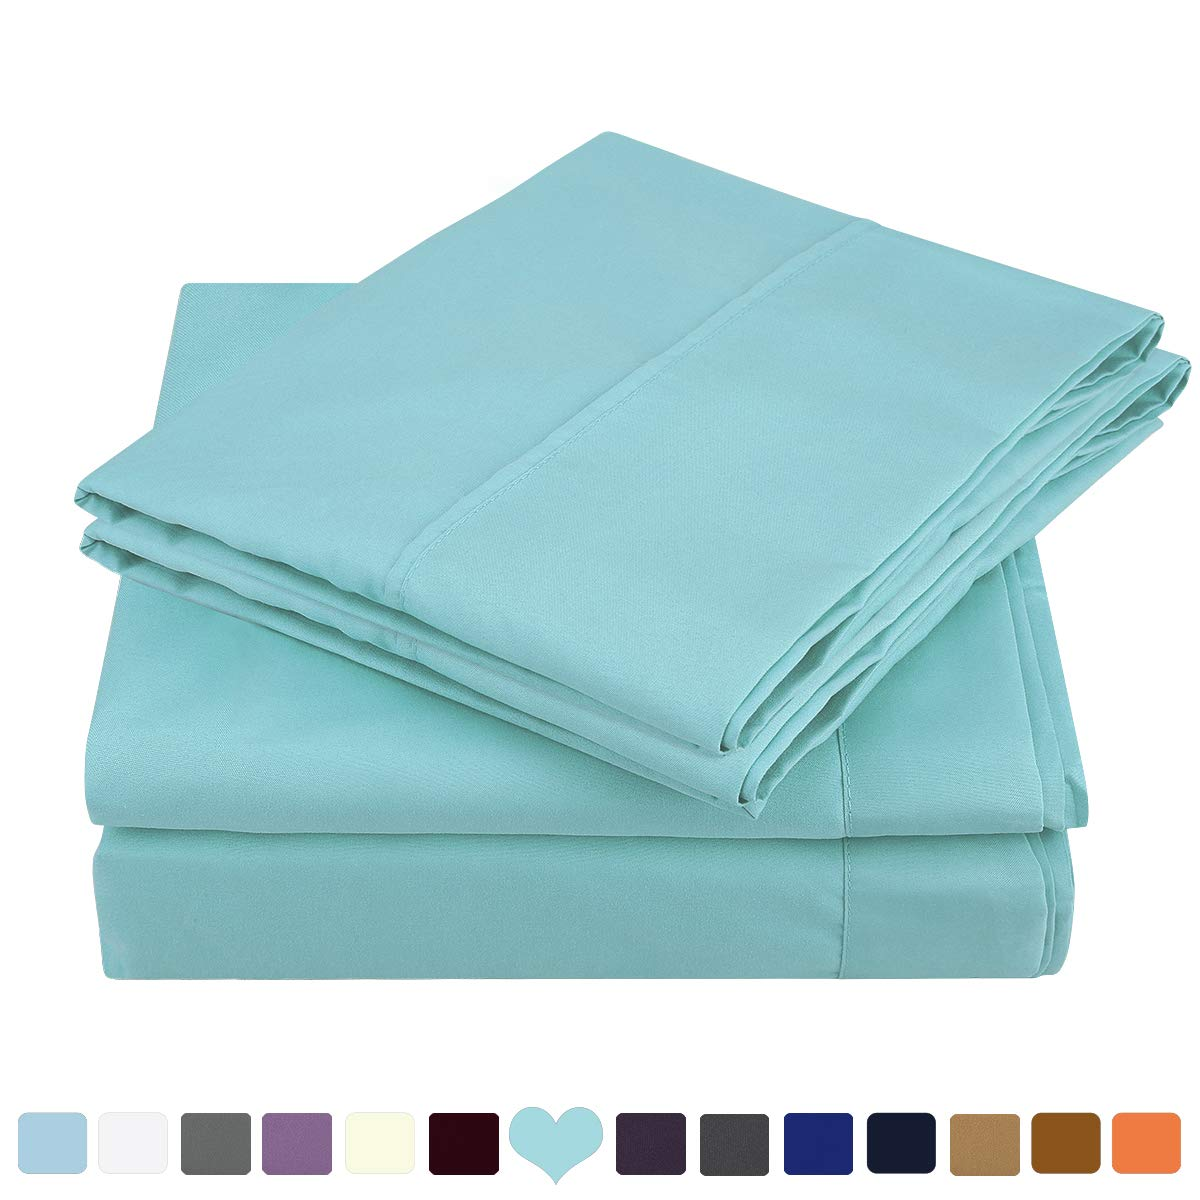 HOMEIDEAS 4 Piece Bed Sheet Set (Queen, Spa Blue) 100% Brushed Microfiber 1800 Bedding Sheets Deep Pockets,Wrinkle & Fade Resistant